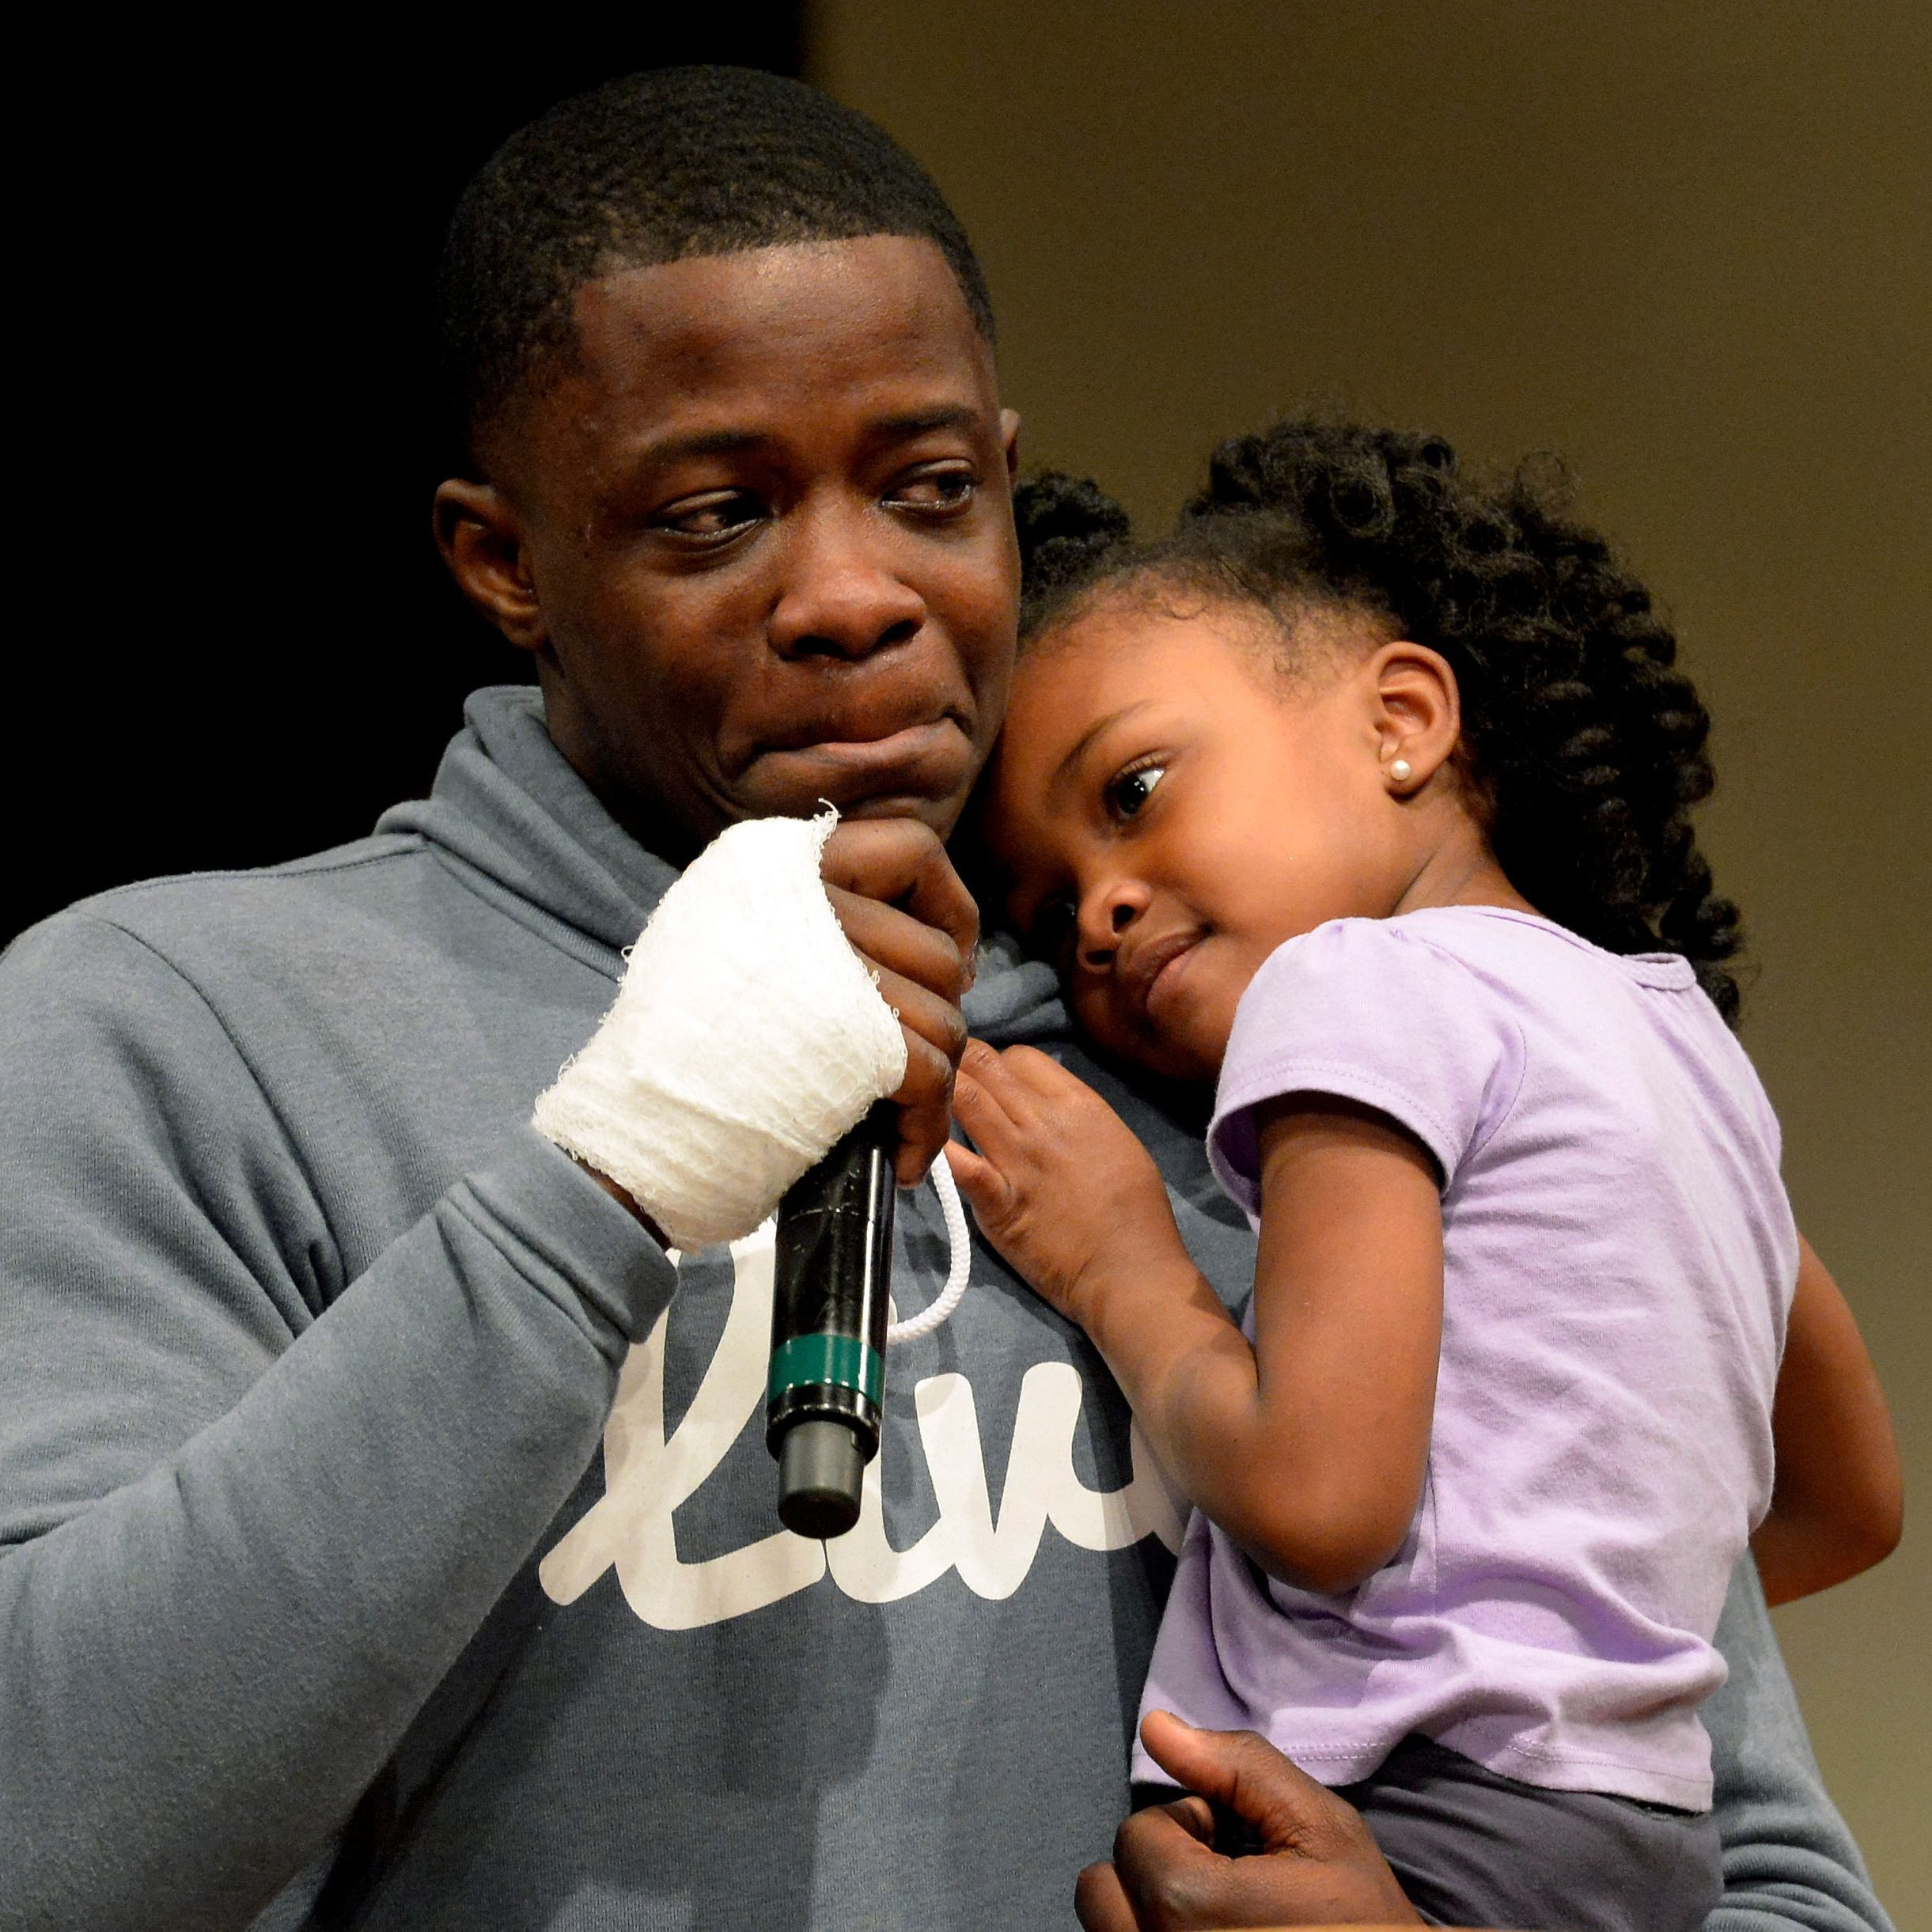 James Shaw Jr. honored as Tennessean People of the Year for his sacrifice